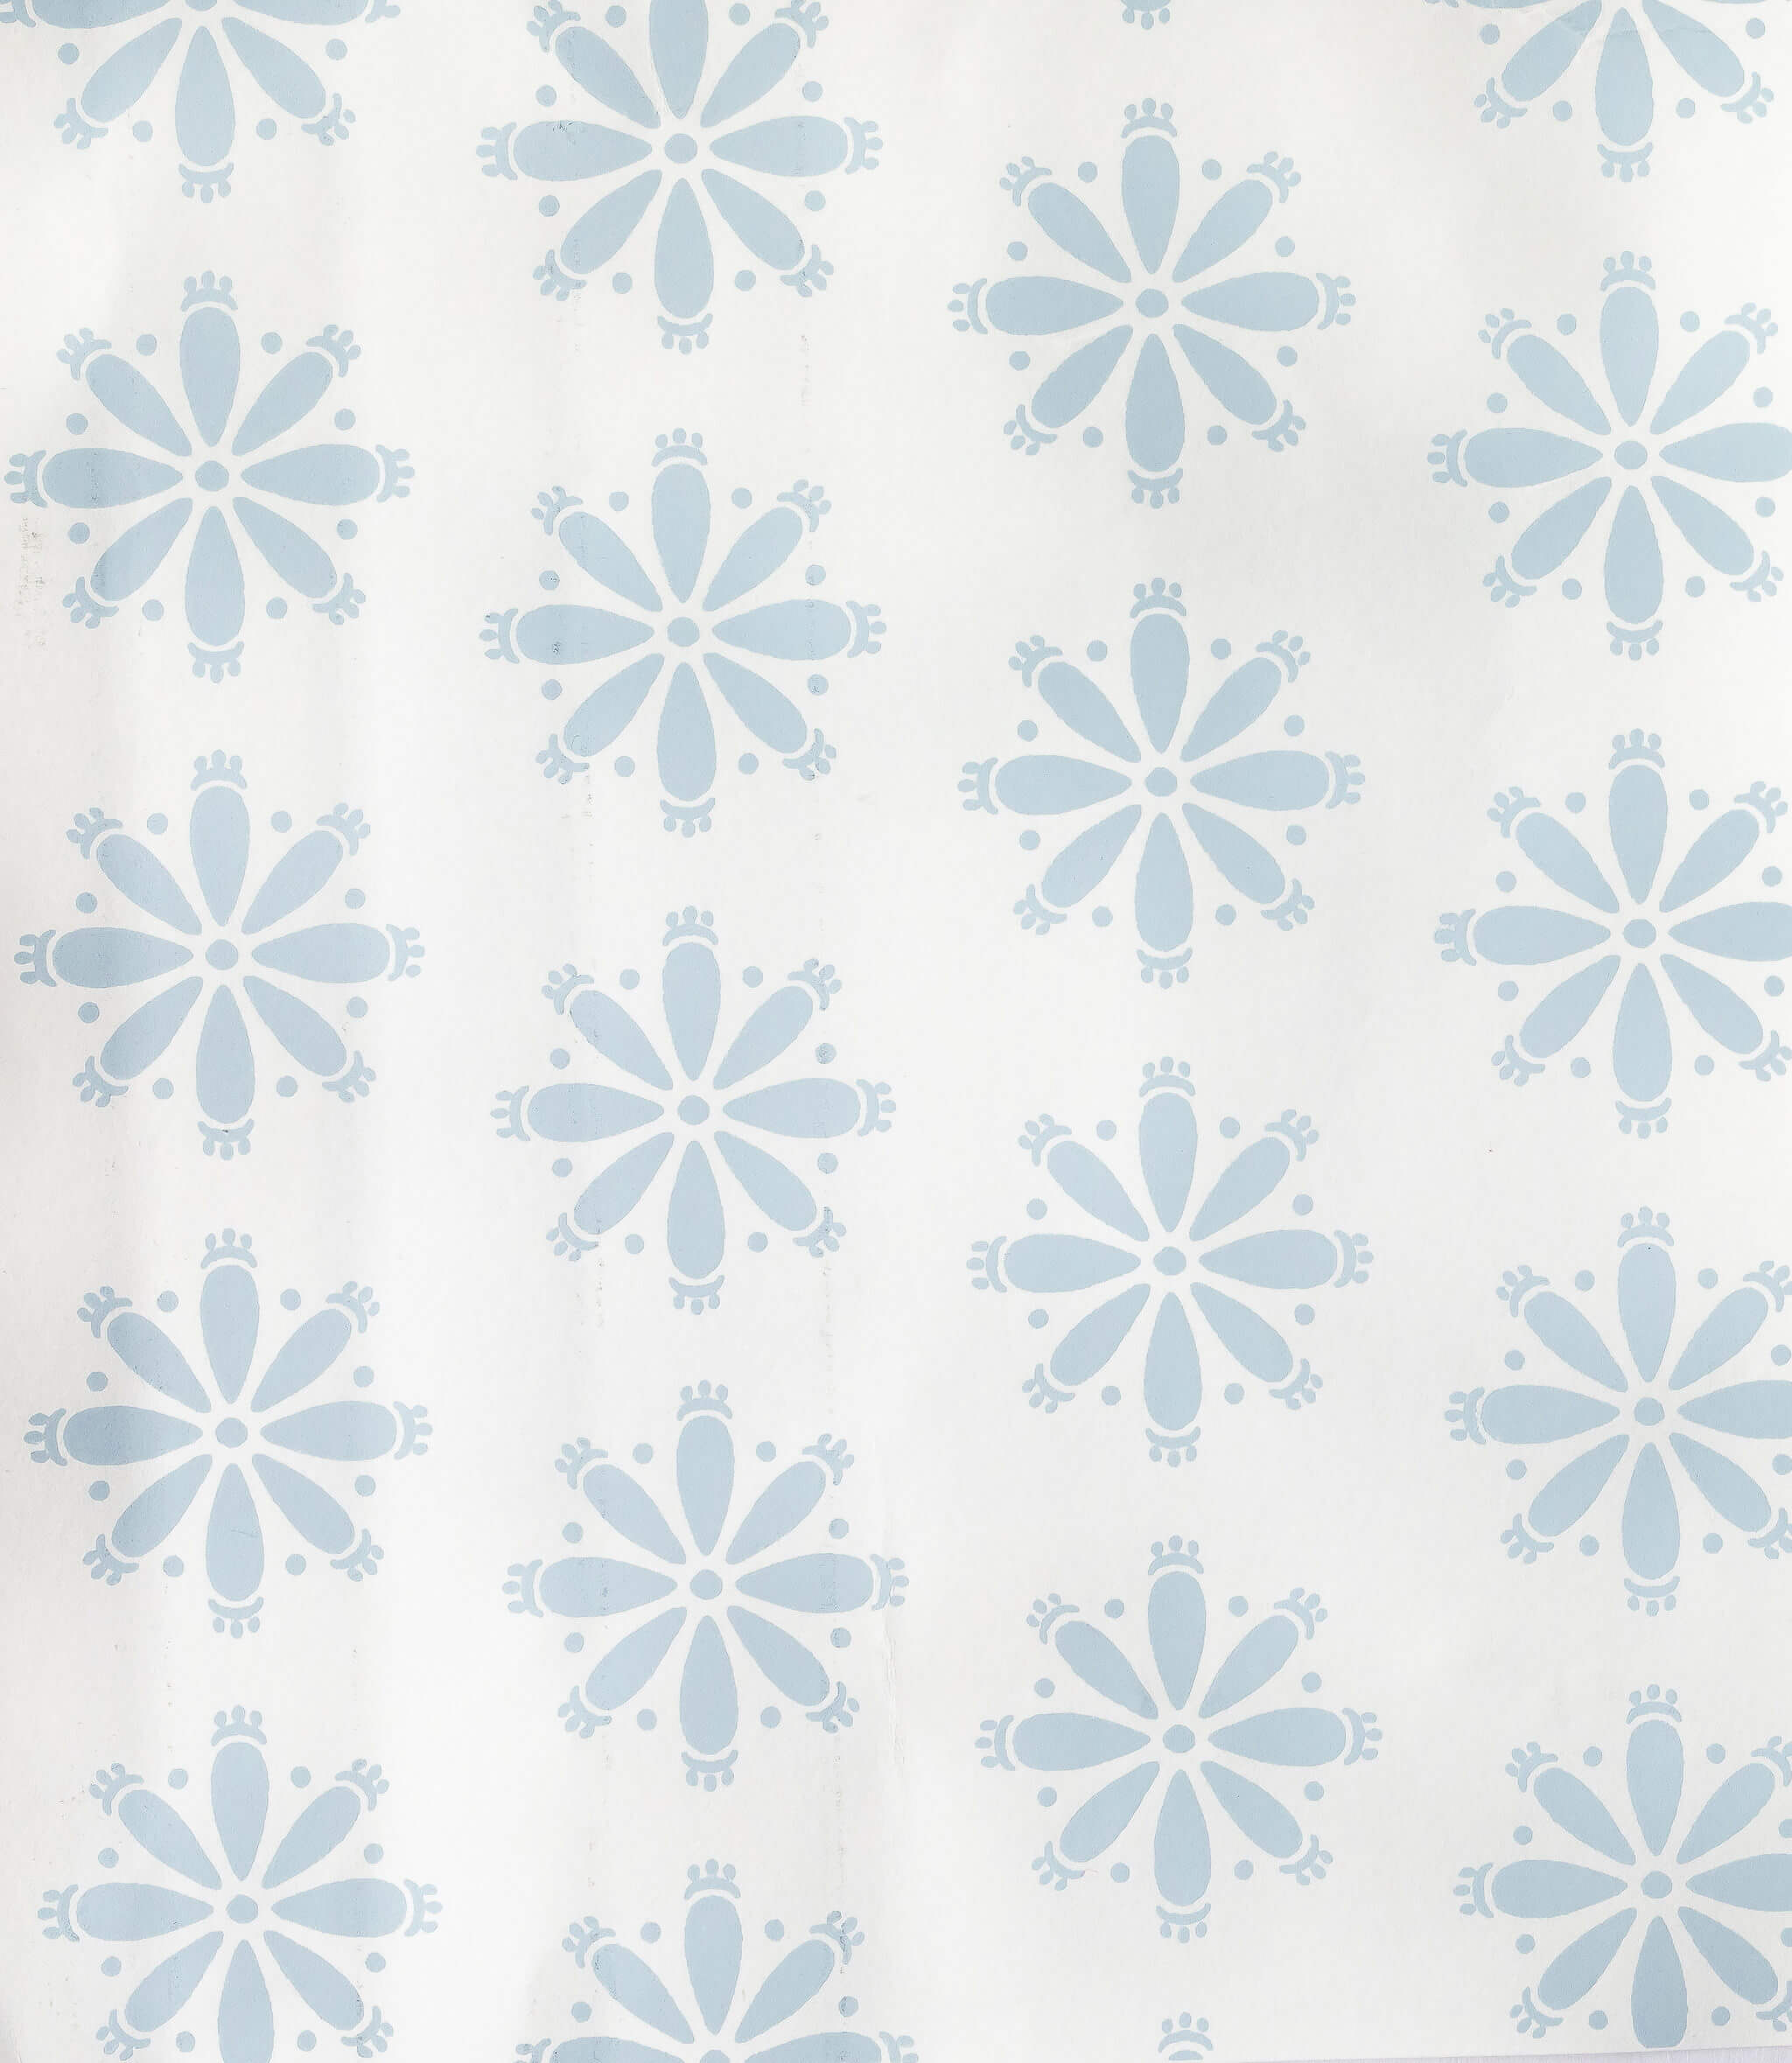 Libby French Blue 10 Wallpaper